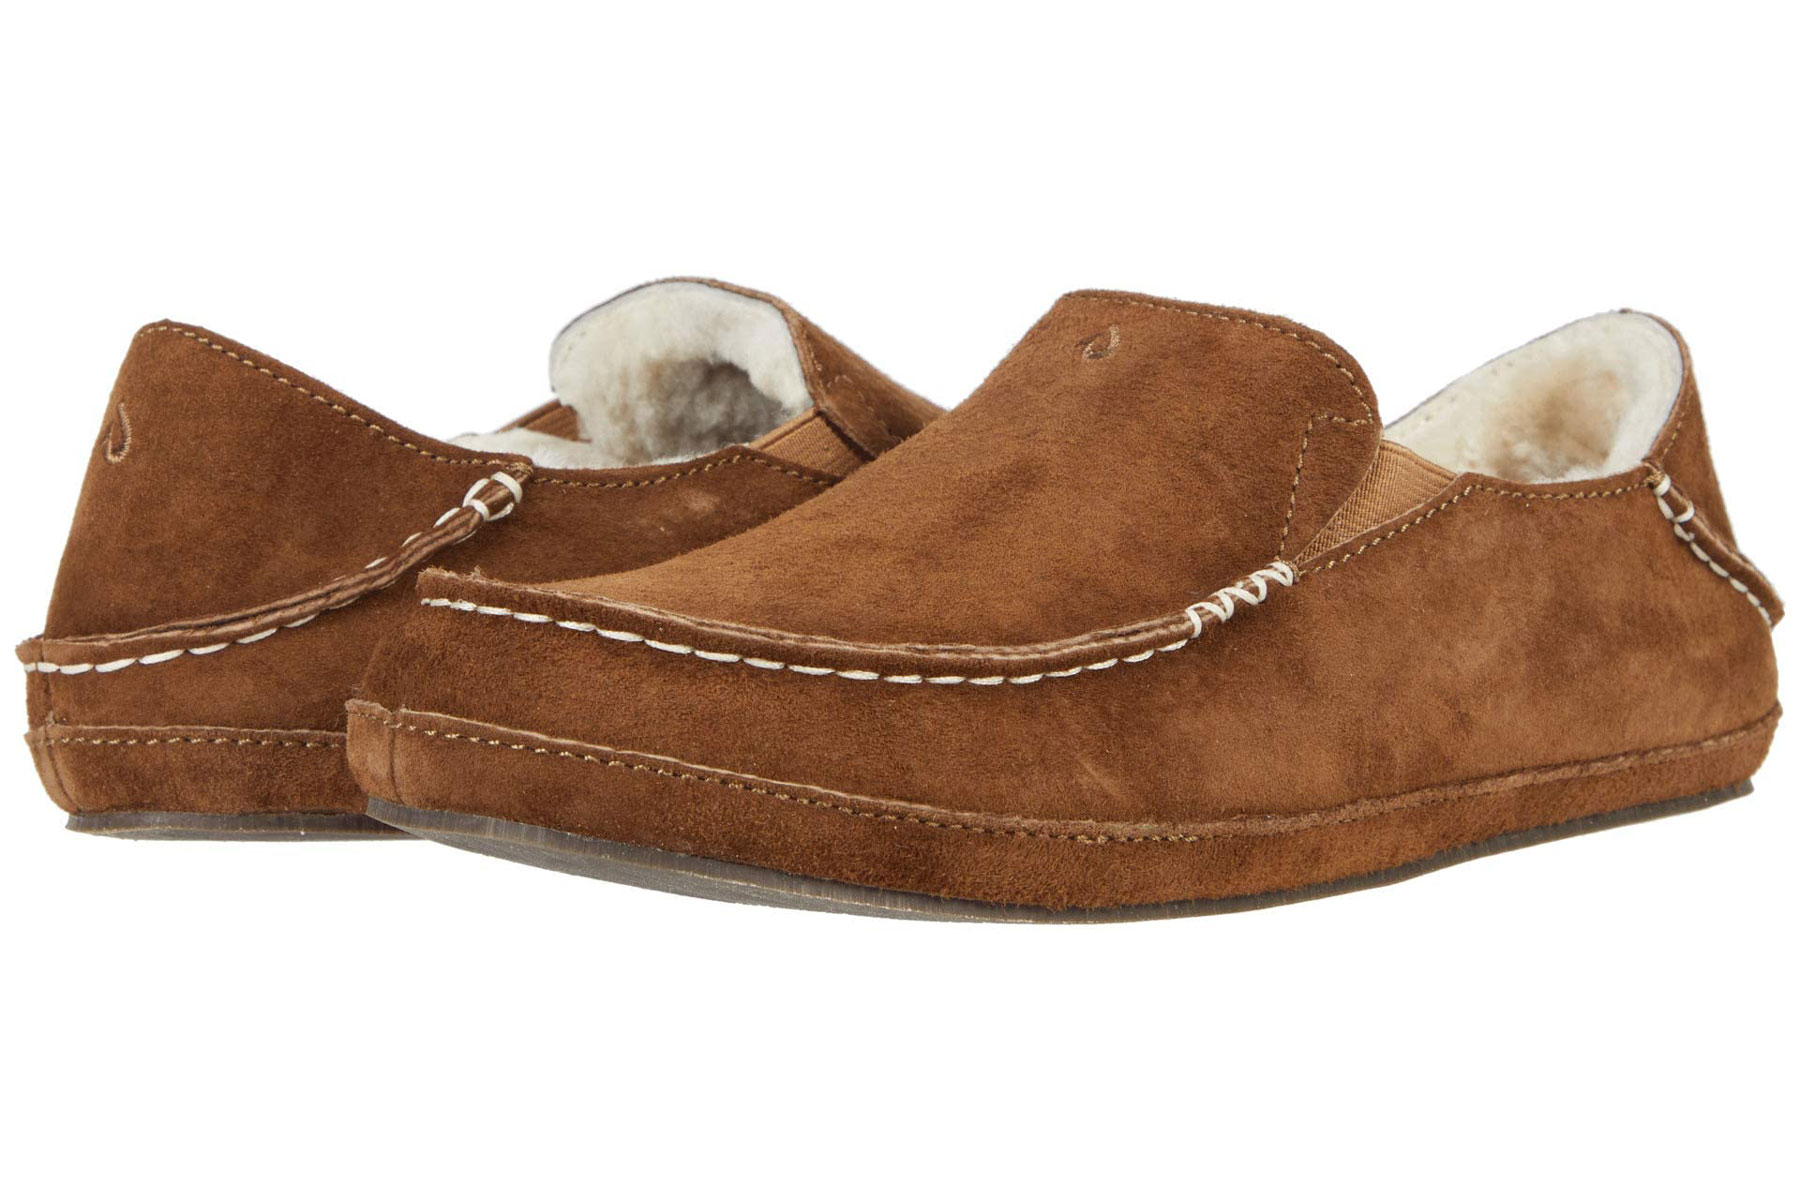 Brown suede shearling slippers